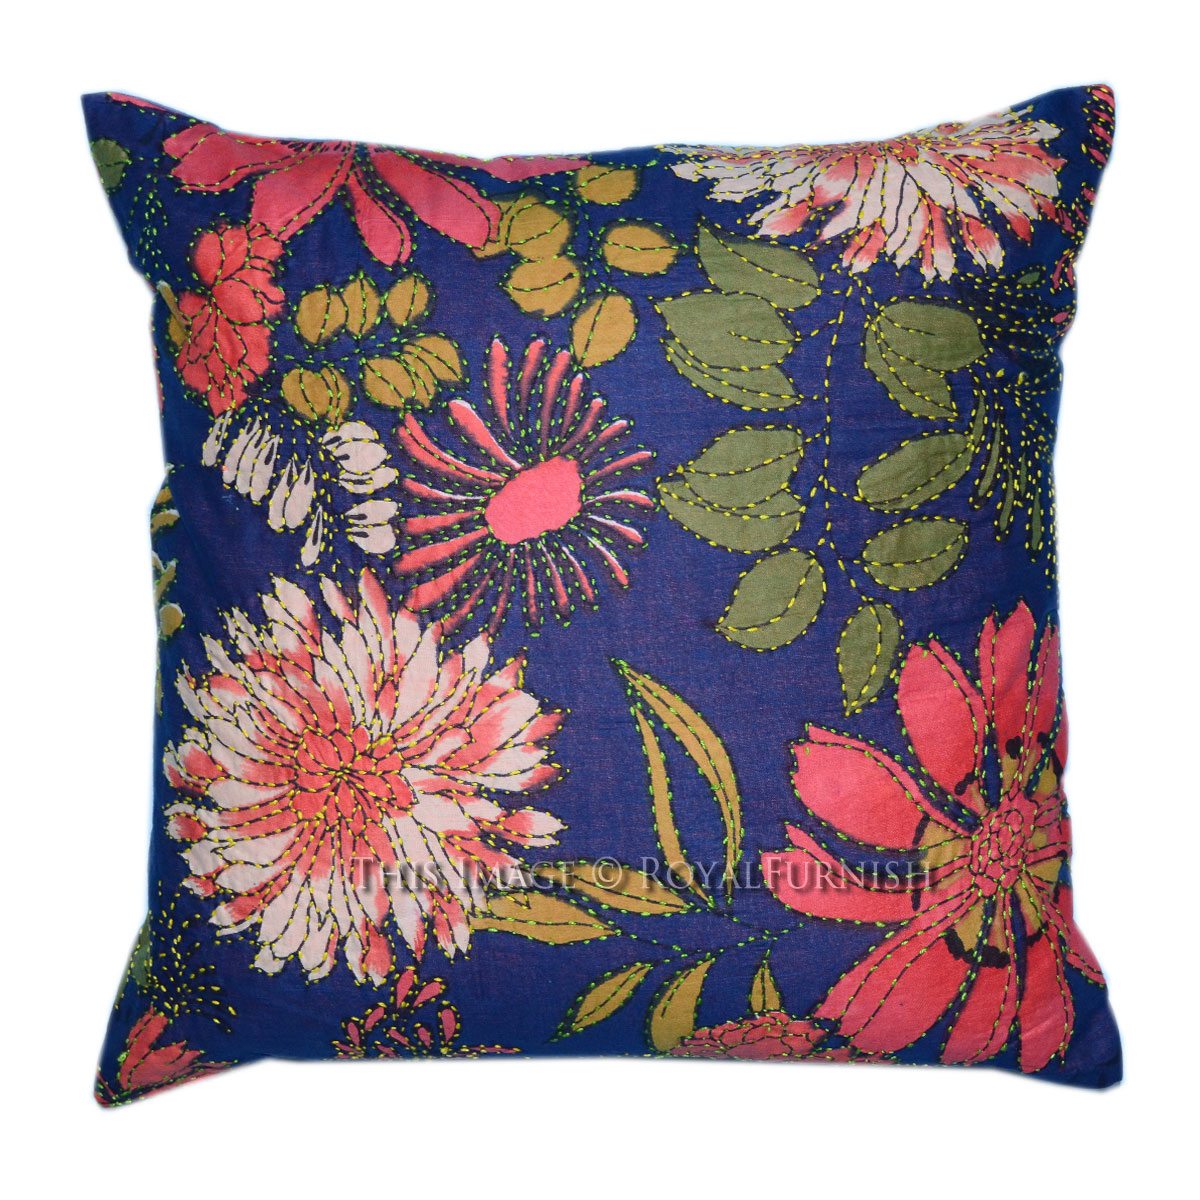 Embroidered Throw Pillow Covers : Decorative Indian Kantha Embroidered Cotton Throw Pillow Cover - RoyalFurnish.com